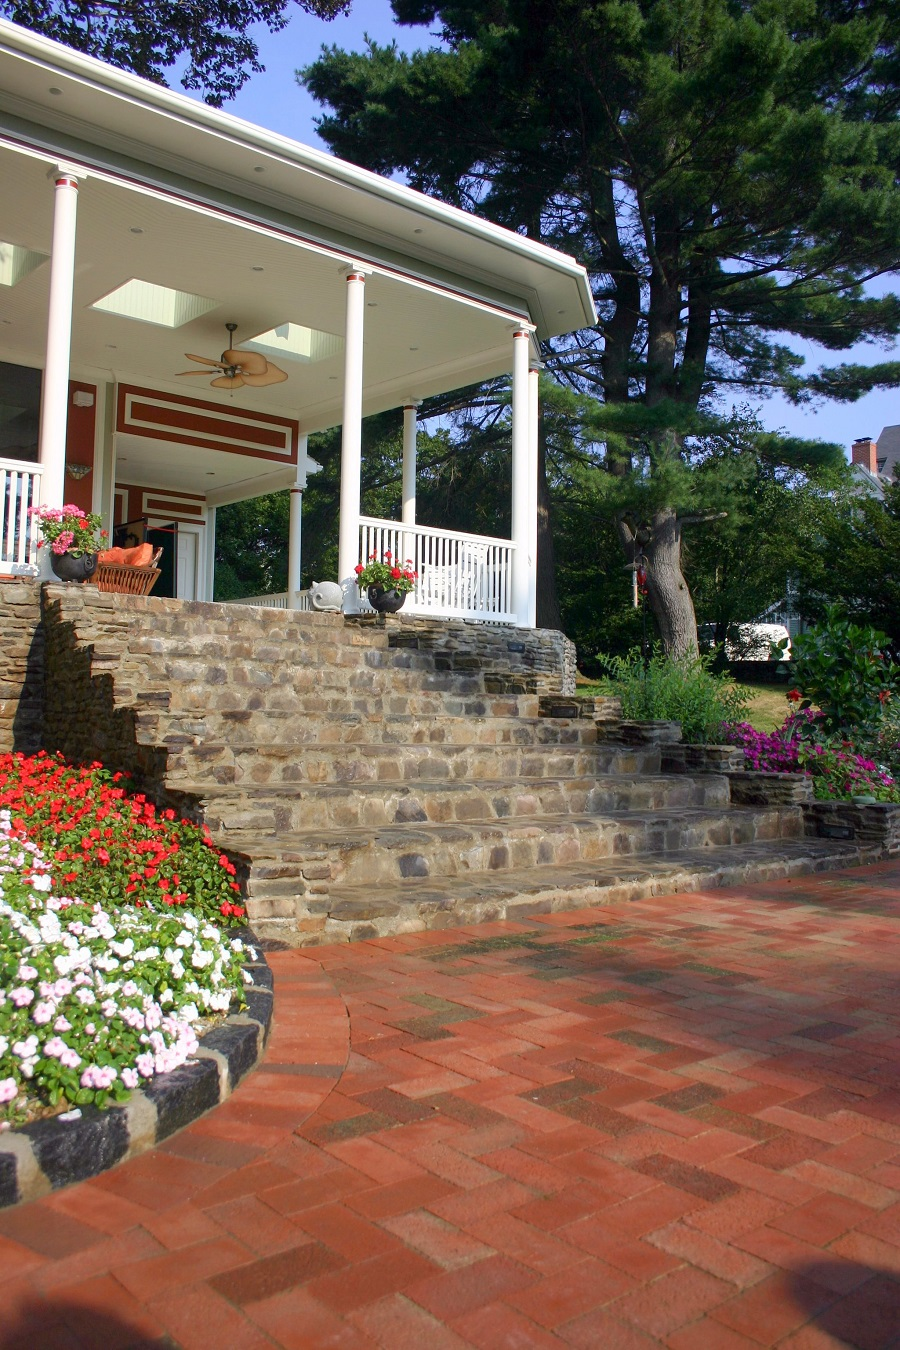 Newton, MA landscapers near me with Unilock walkway pavers